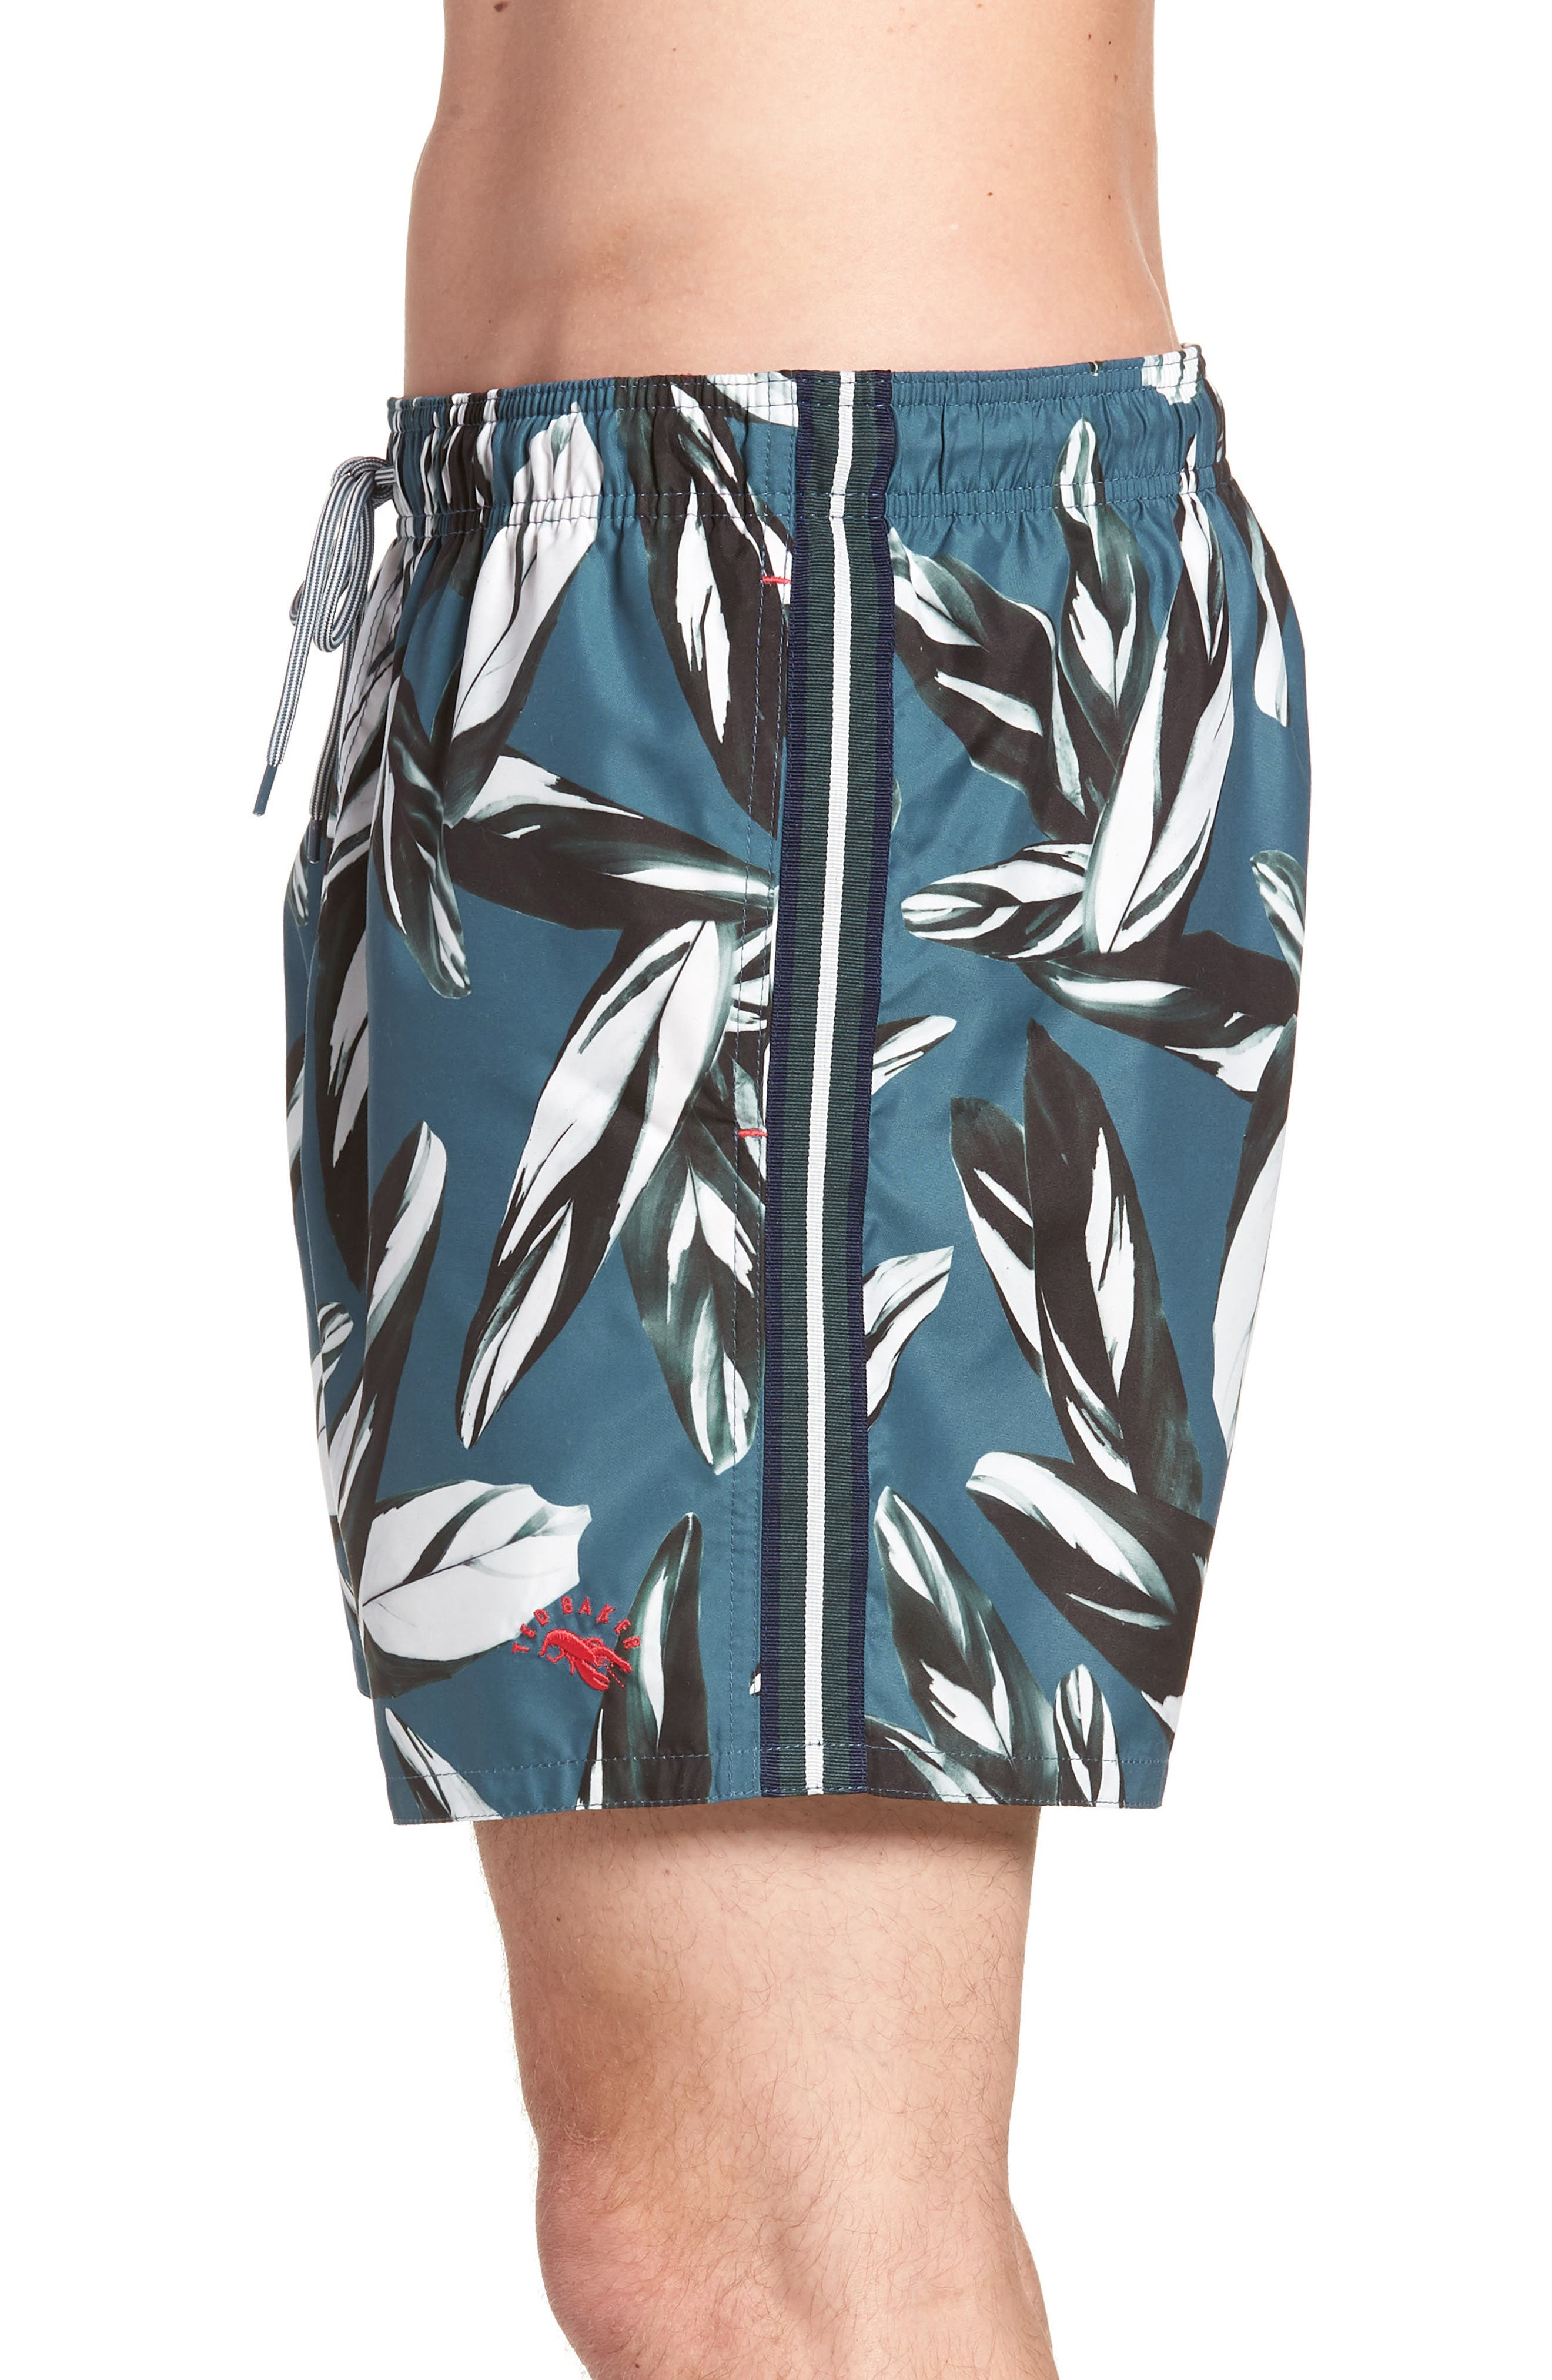 Bury Leaf Print Swim Shorts,                             Alternate thumbnail 3, color,                             440